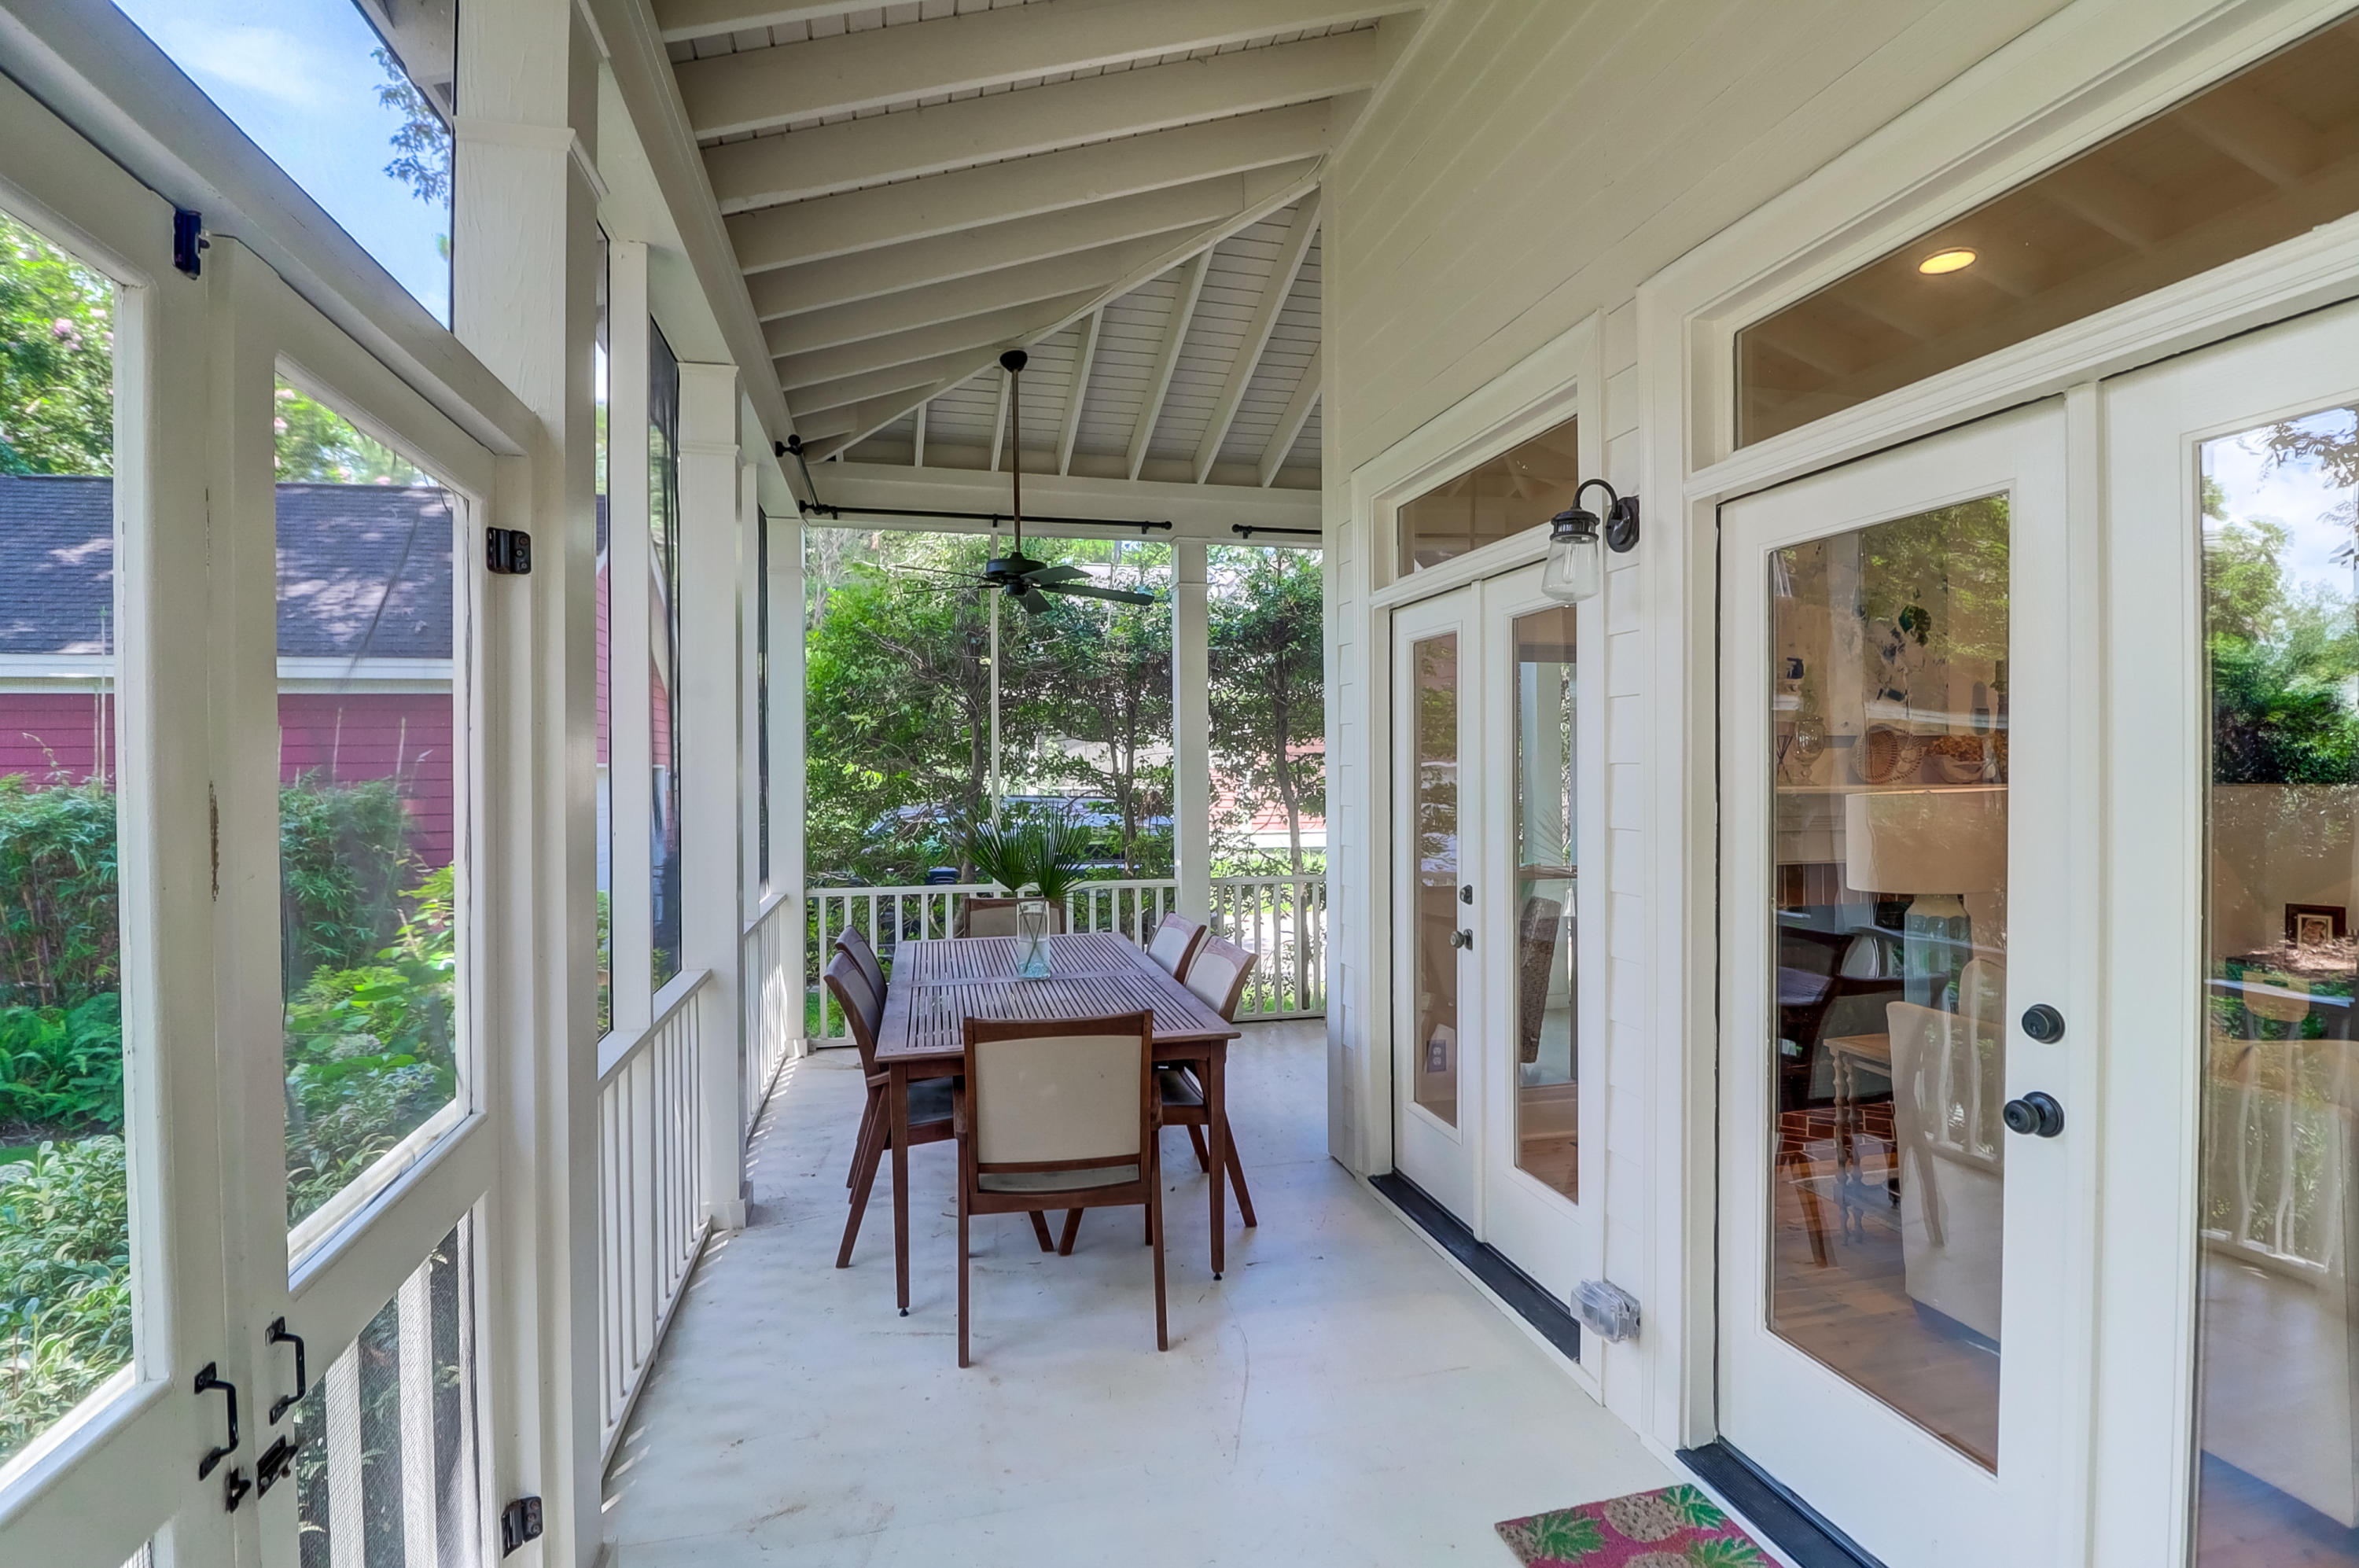 The Villages In St Johns Woods Homes For Sale - 5056 Coral Reef Dr, Johns Island, SC - 11